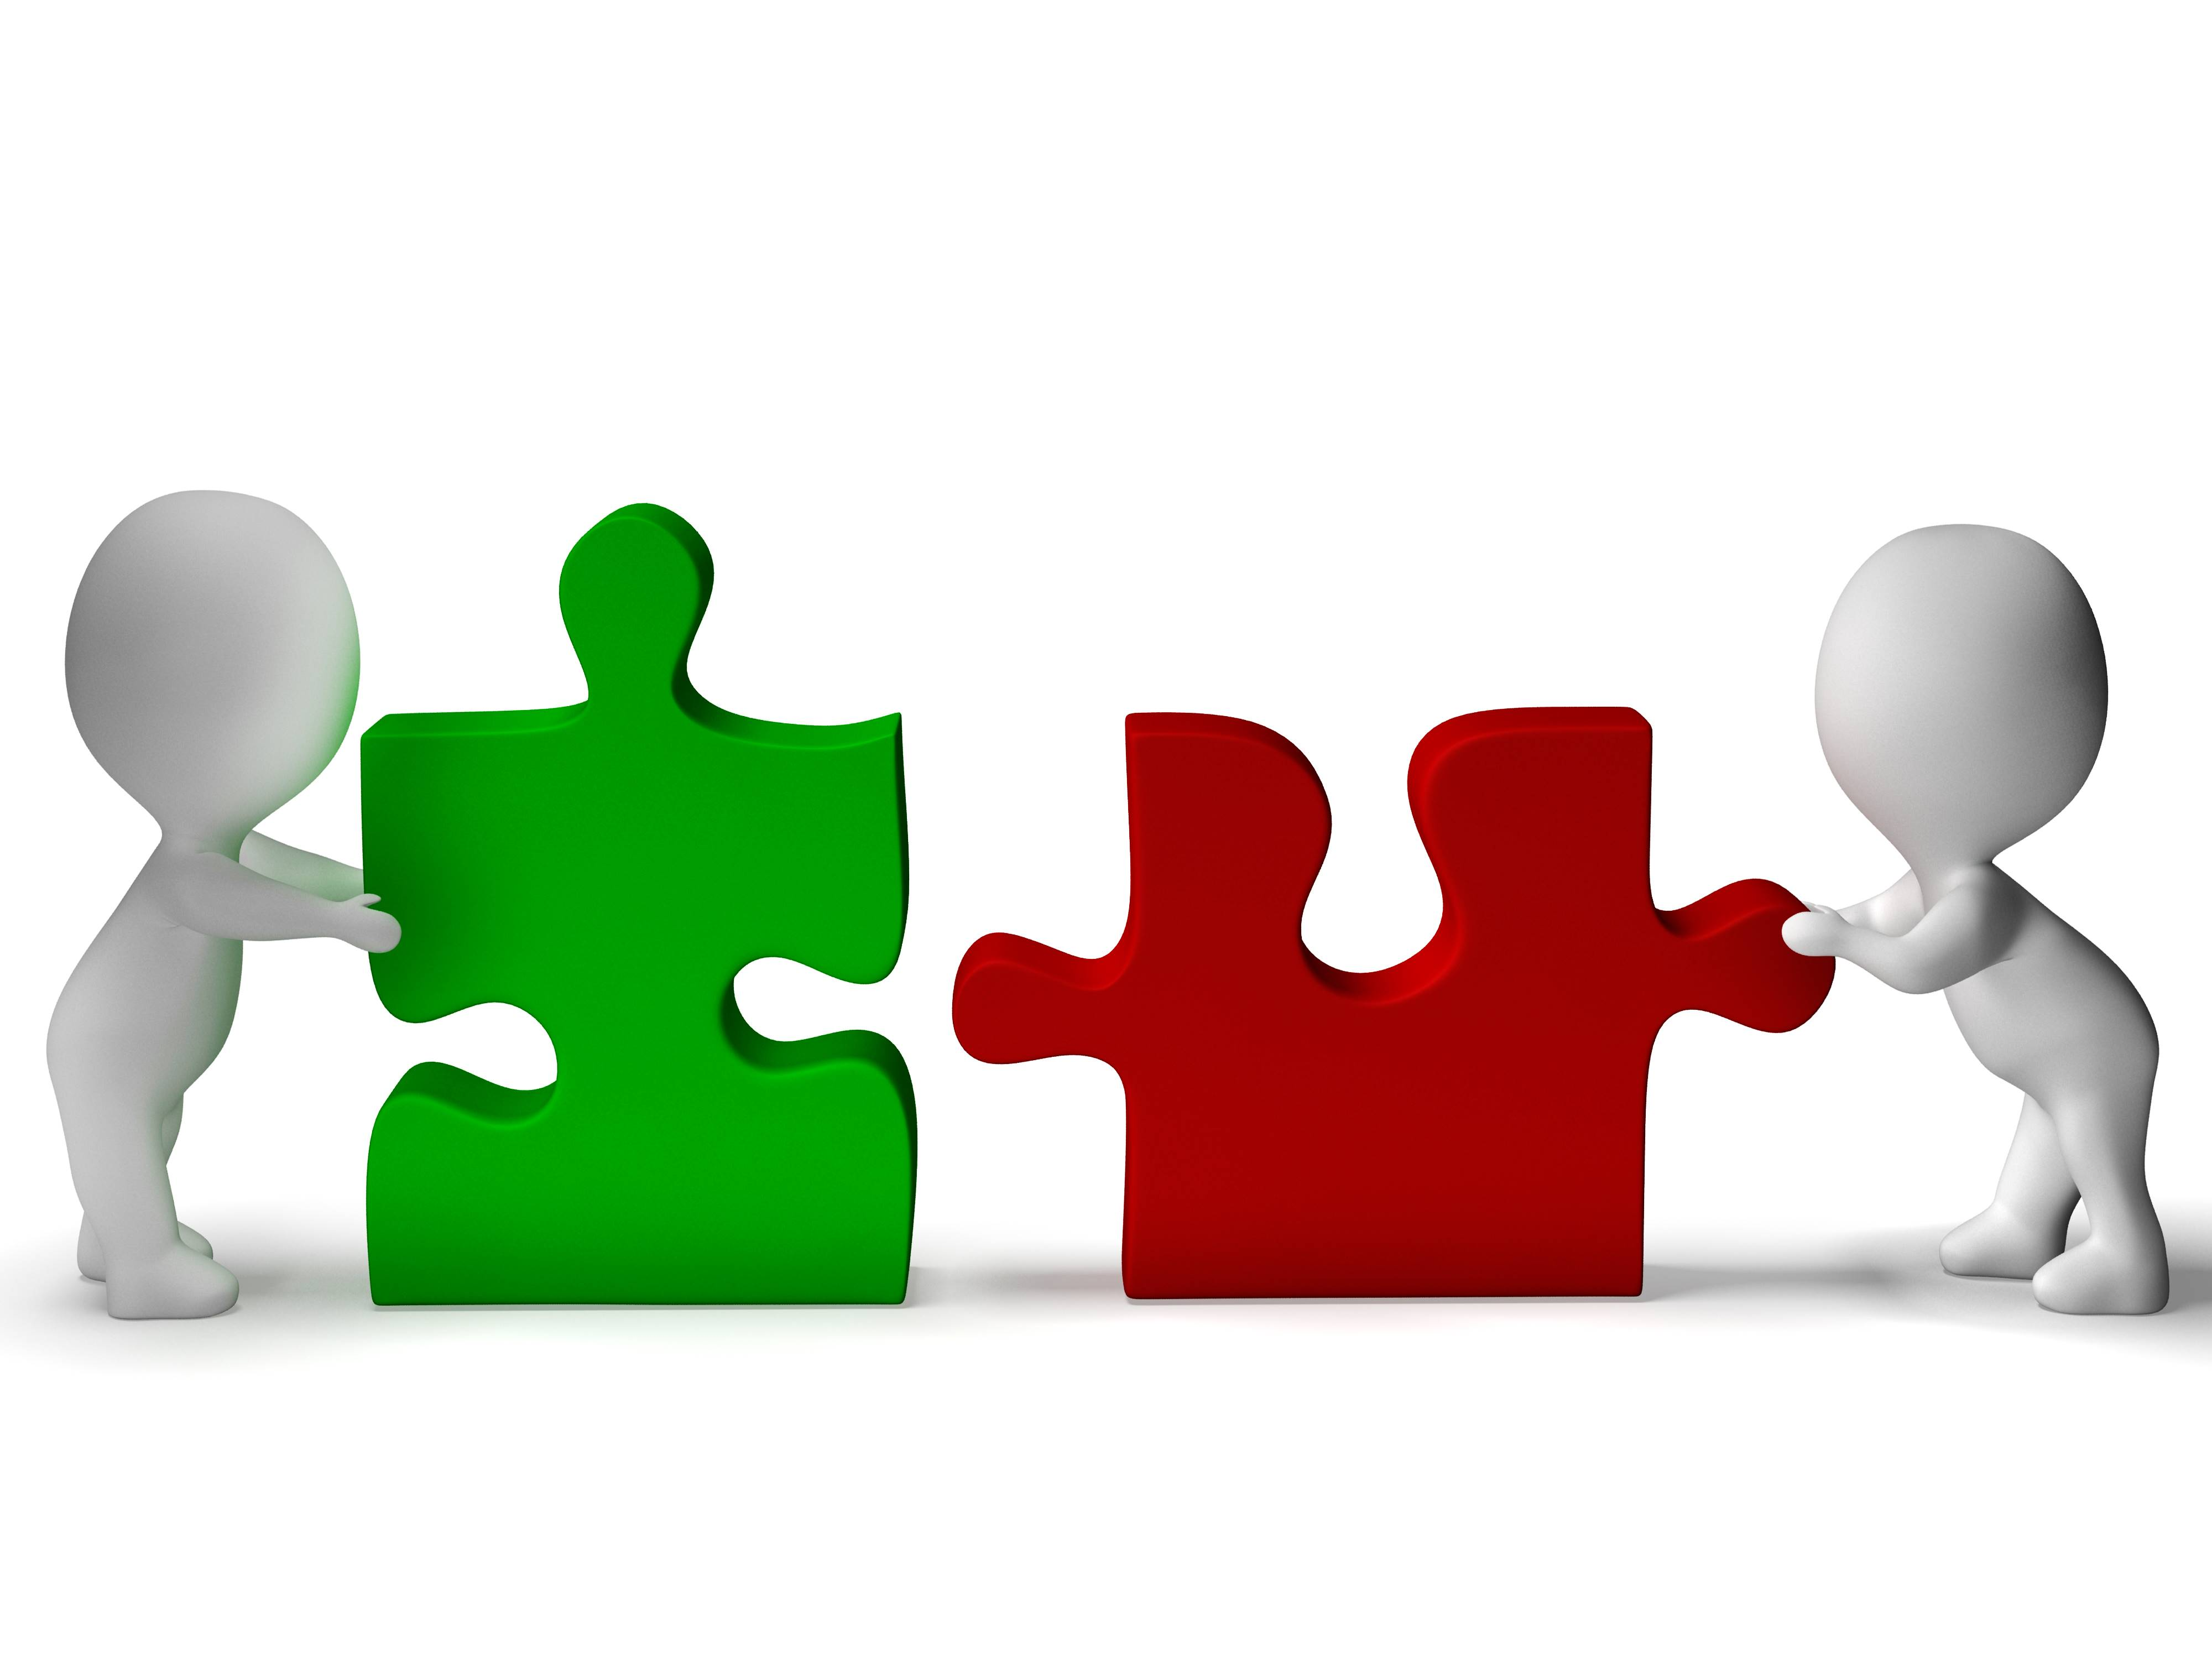 5343073-jigsaw-pieces-being-joined-shows-teamwork-and-collaboration.jpg